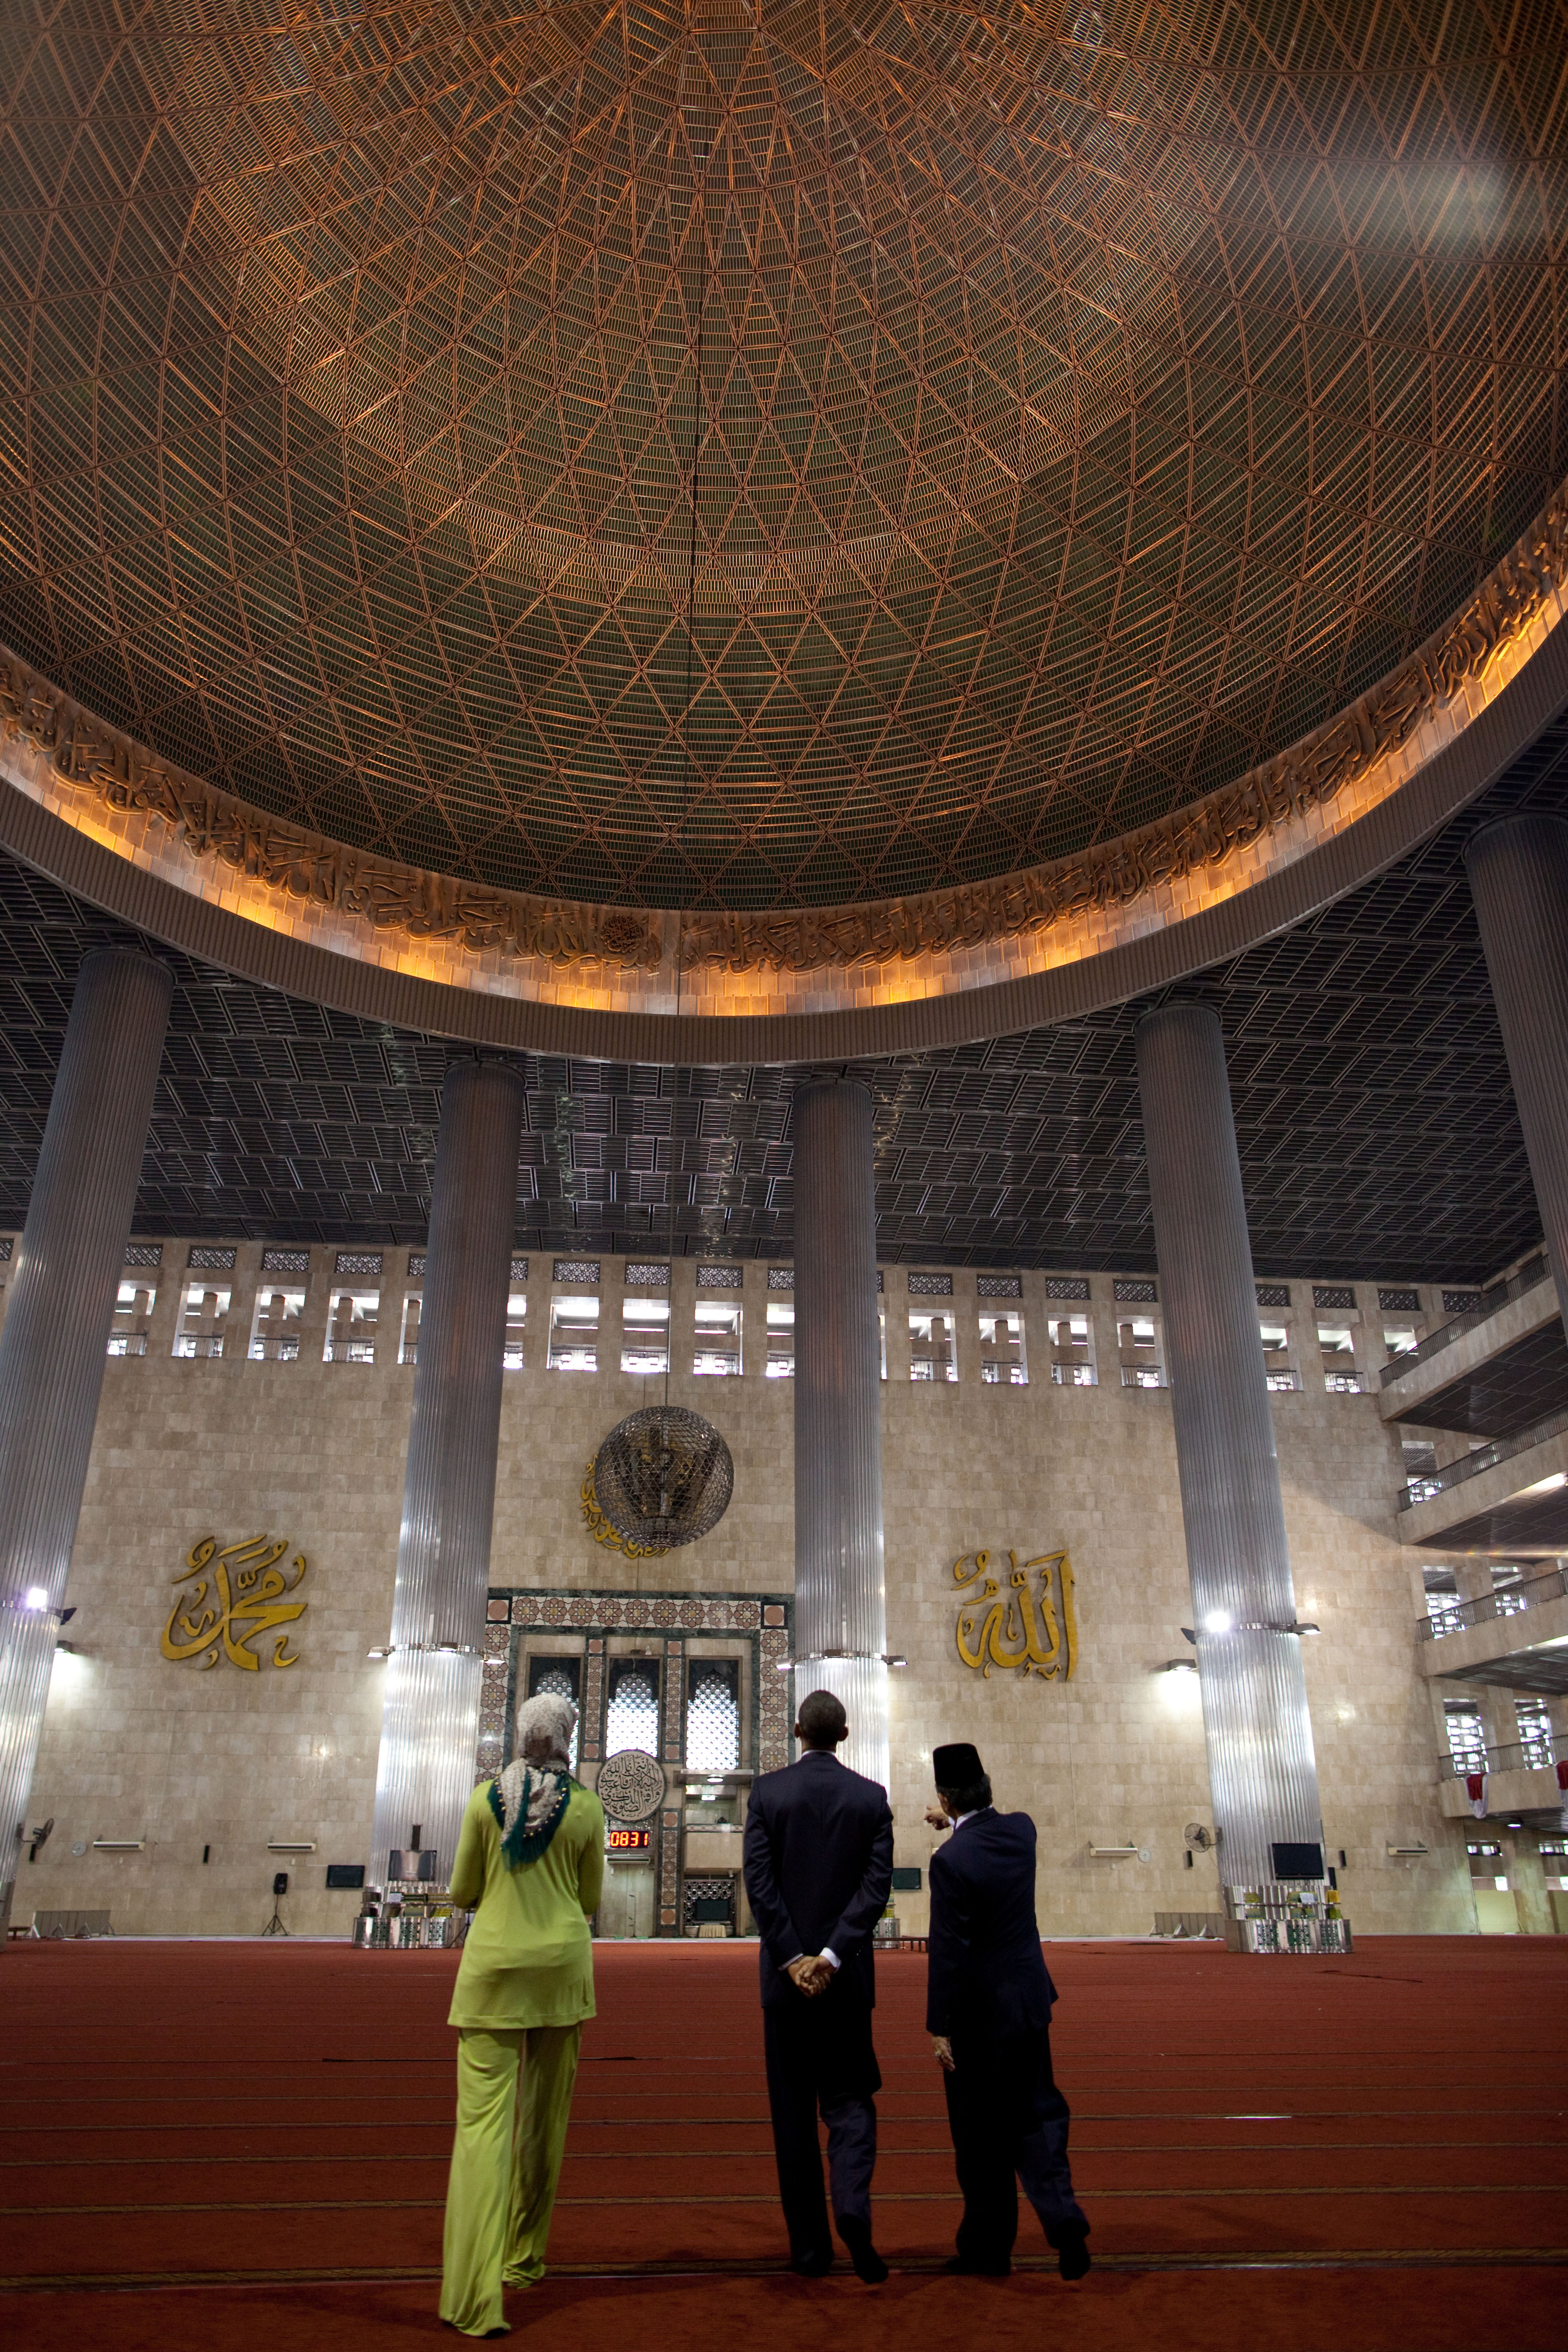 President Barack Obama And First Lady Michelle Obama Visit The Main Prayer Hall During A Tour Of The Istiqlal Mosque With Grand Imam Ali Mustafa Yaqub In Jakarta, Indonesia, Nov. 10, 2010. White House Photo By Pete Souza/U.S. Government Work.